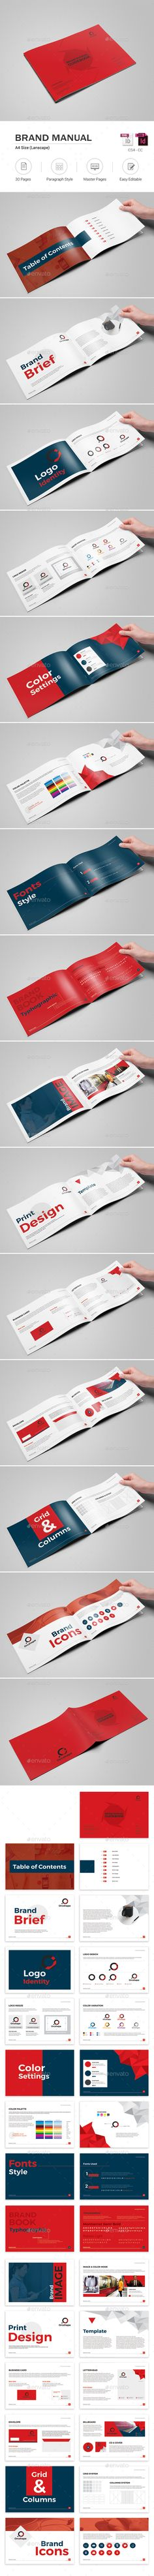 Minimal and Professional Brand Manual Landscape Brochure Template ...